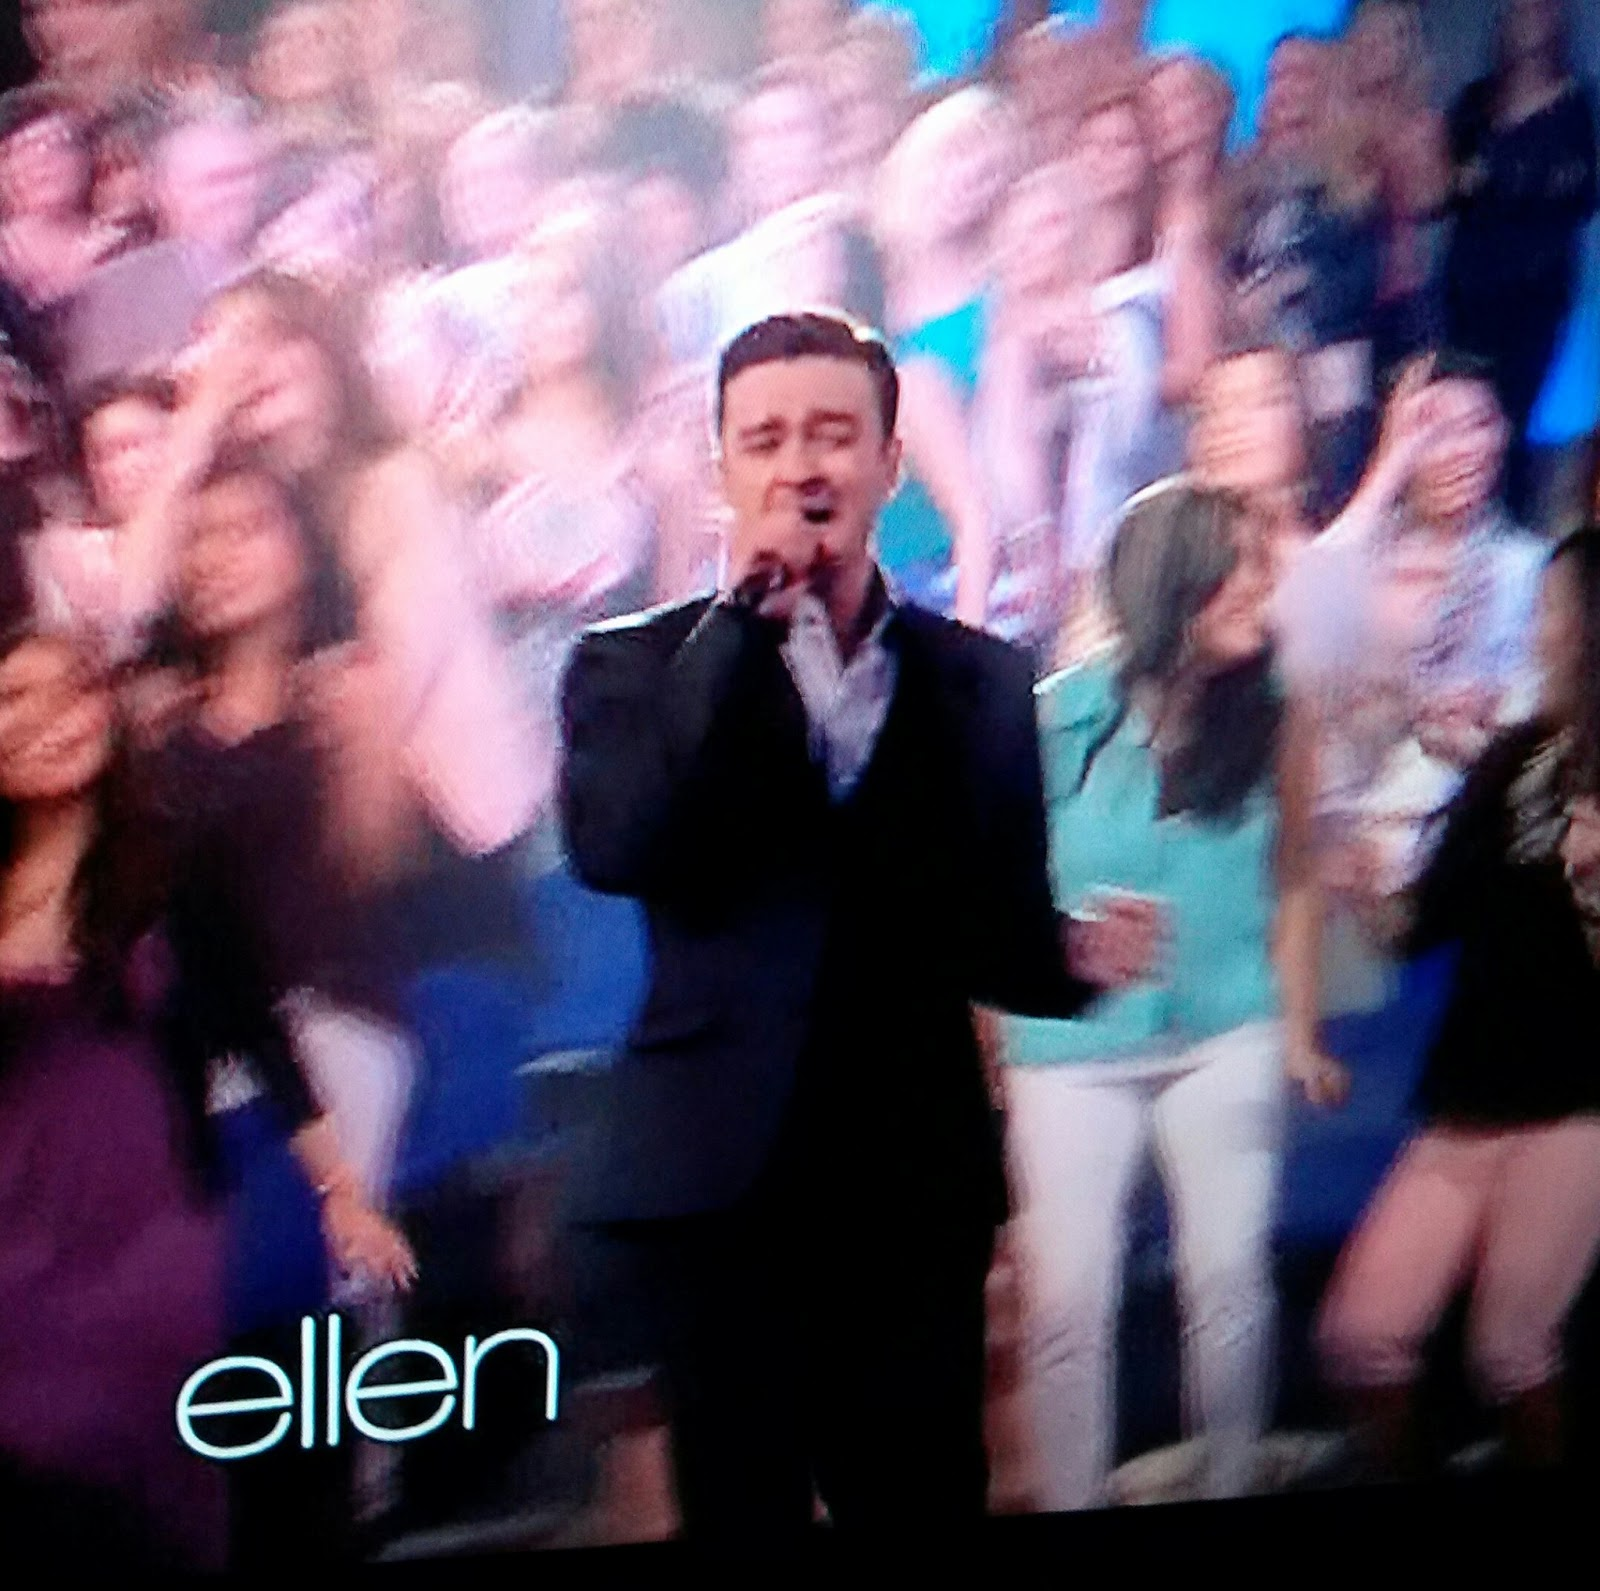 FREE IS MY LIFE: WIN Justin Timberlake Tickets from @TheEllenShow ...